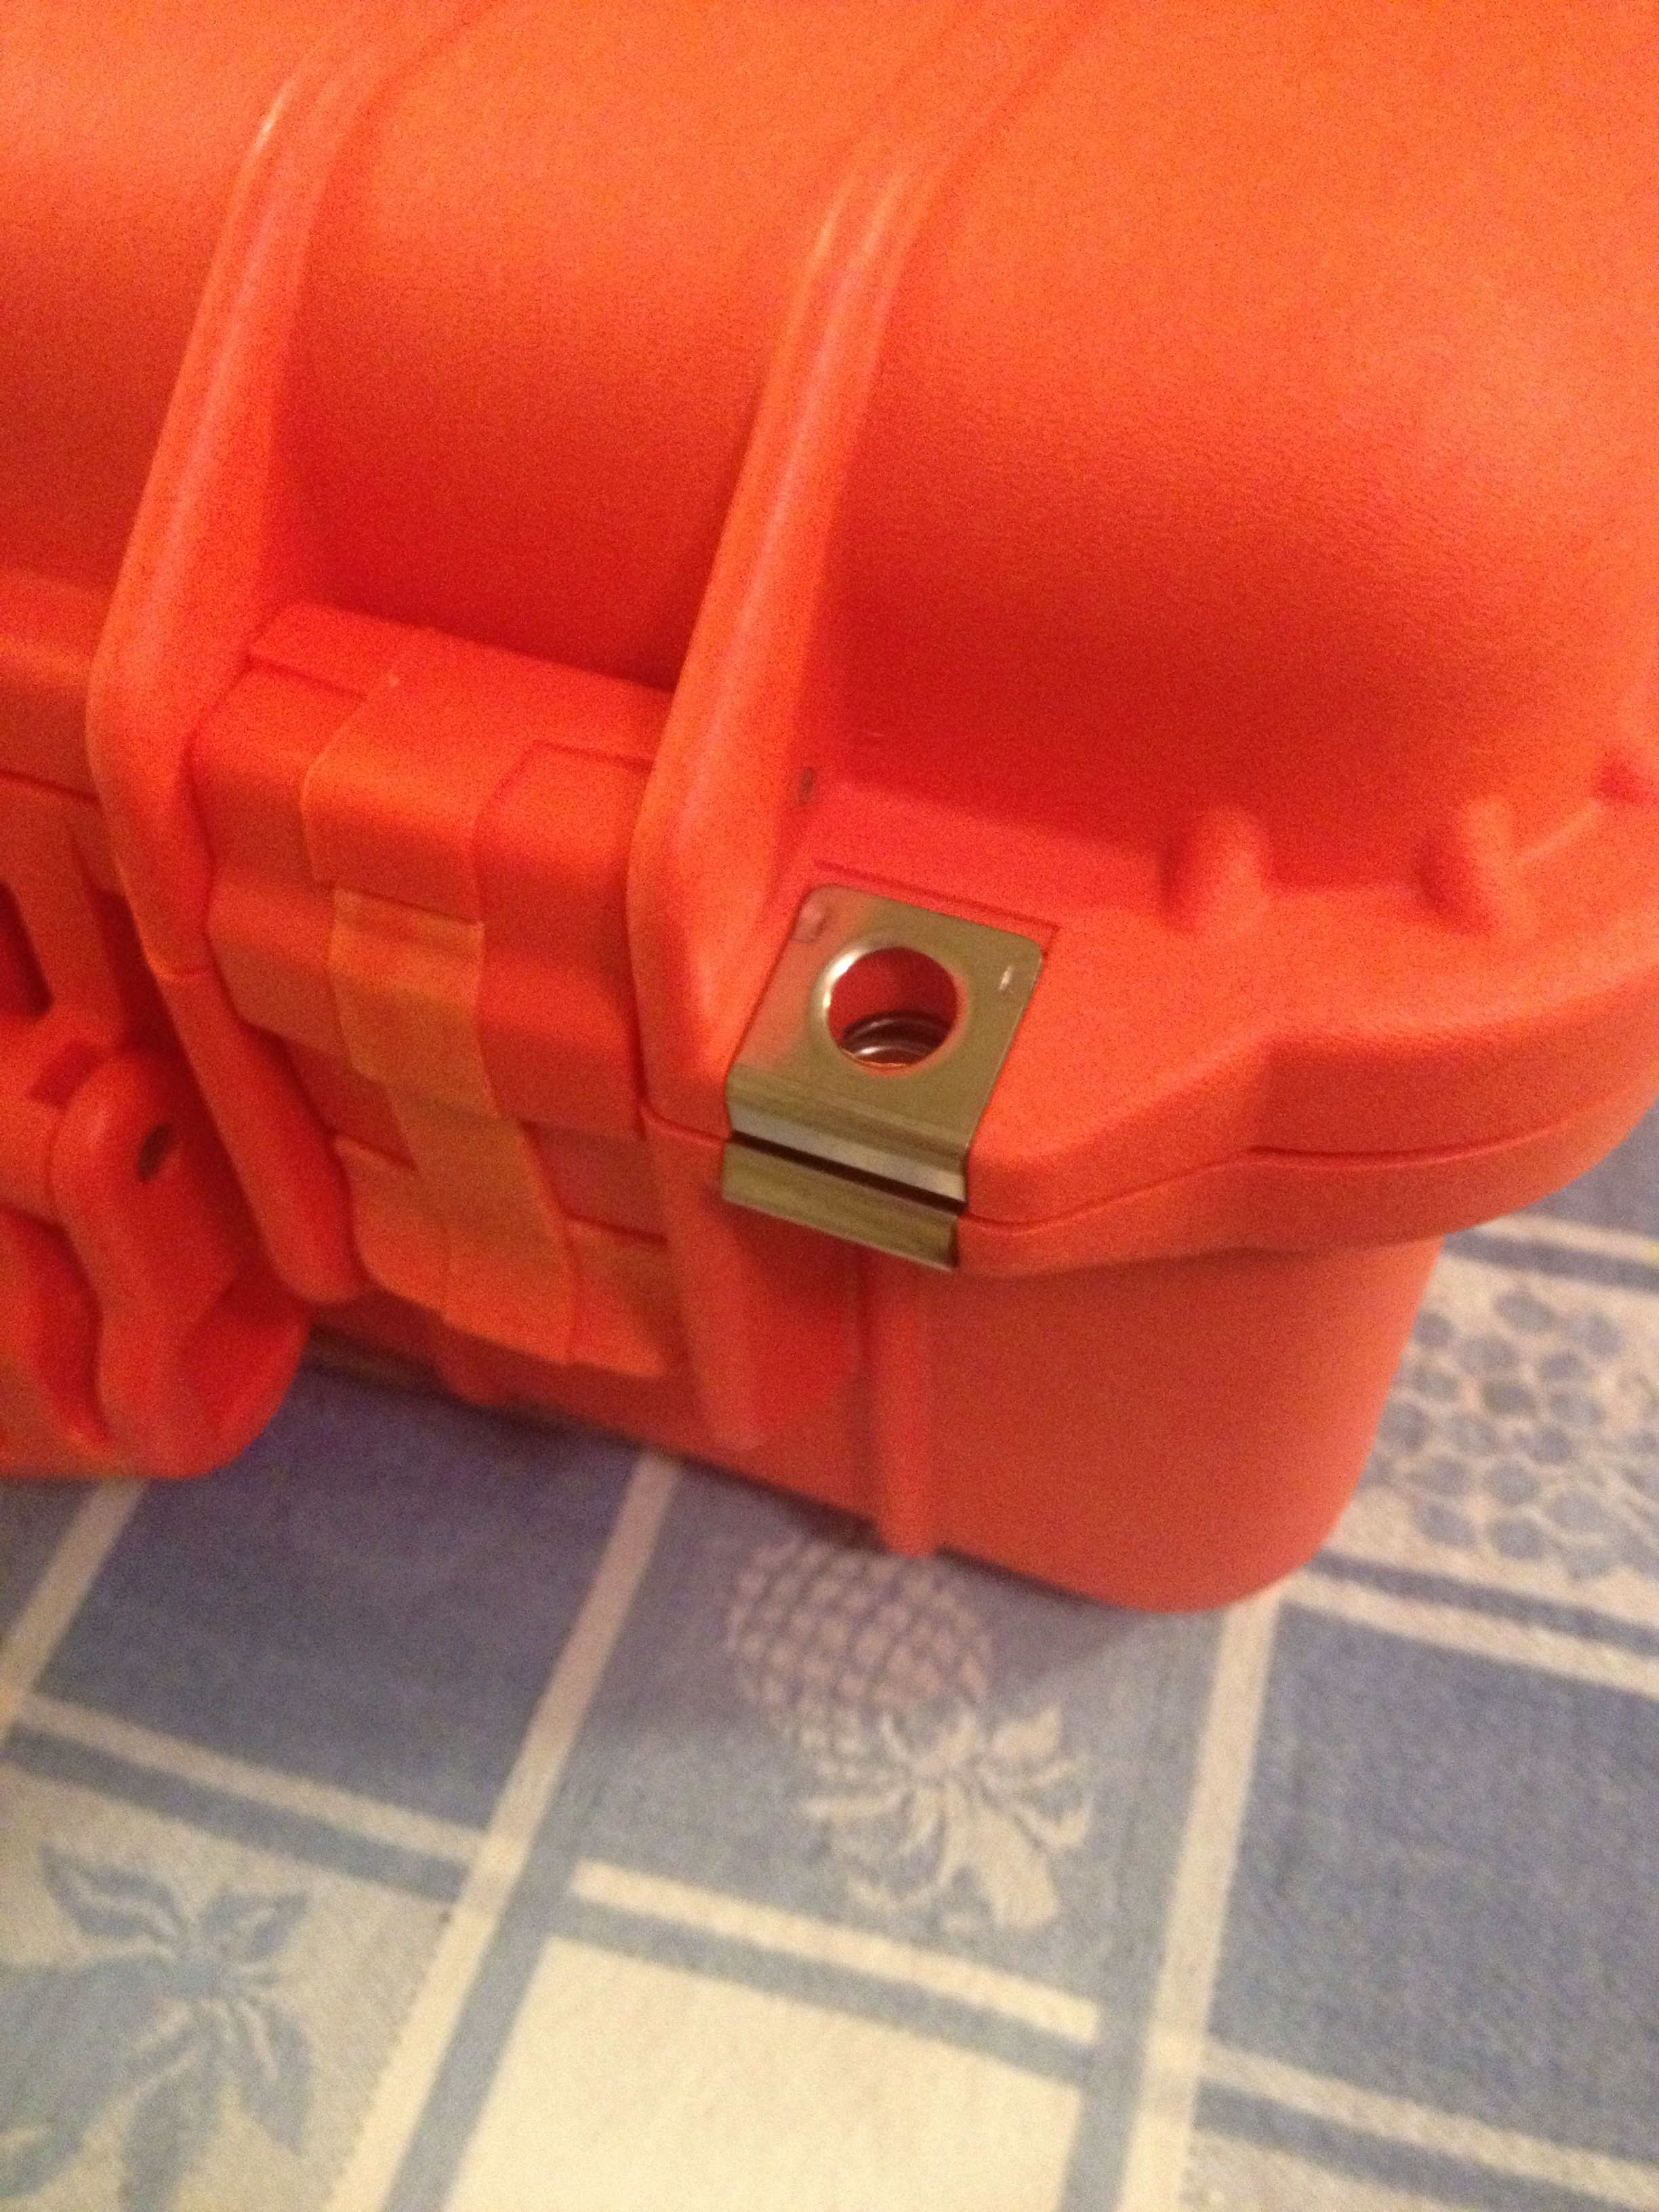 two steel holes for locking purposes & watcher proof latches.